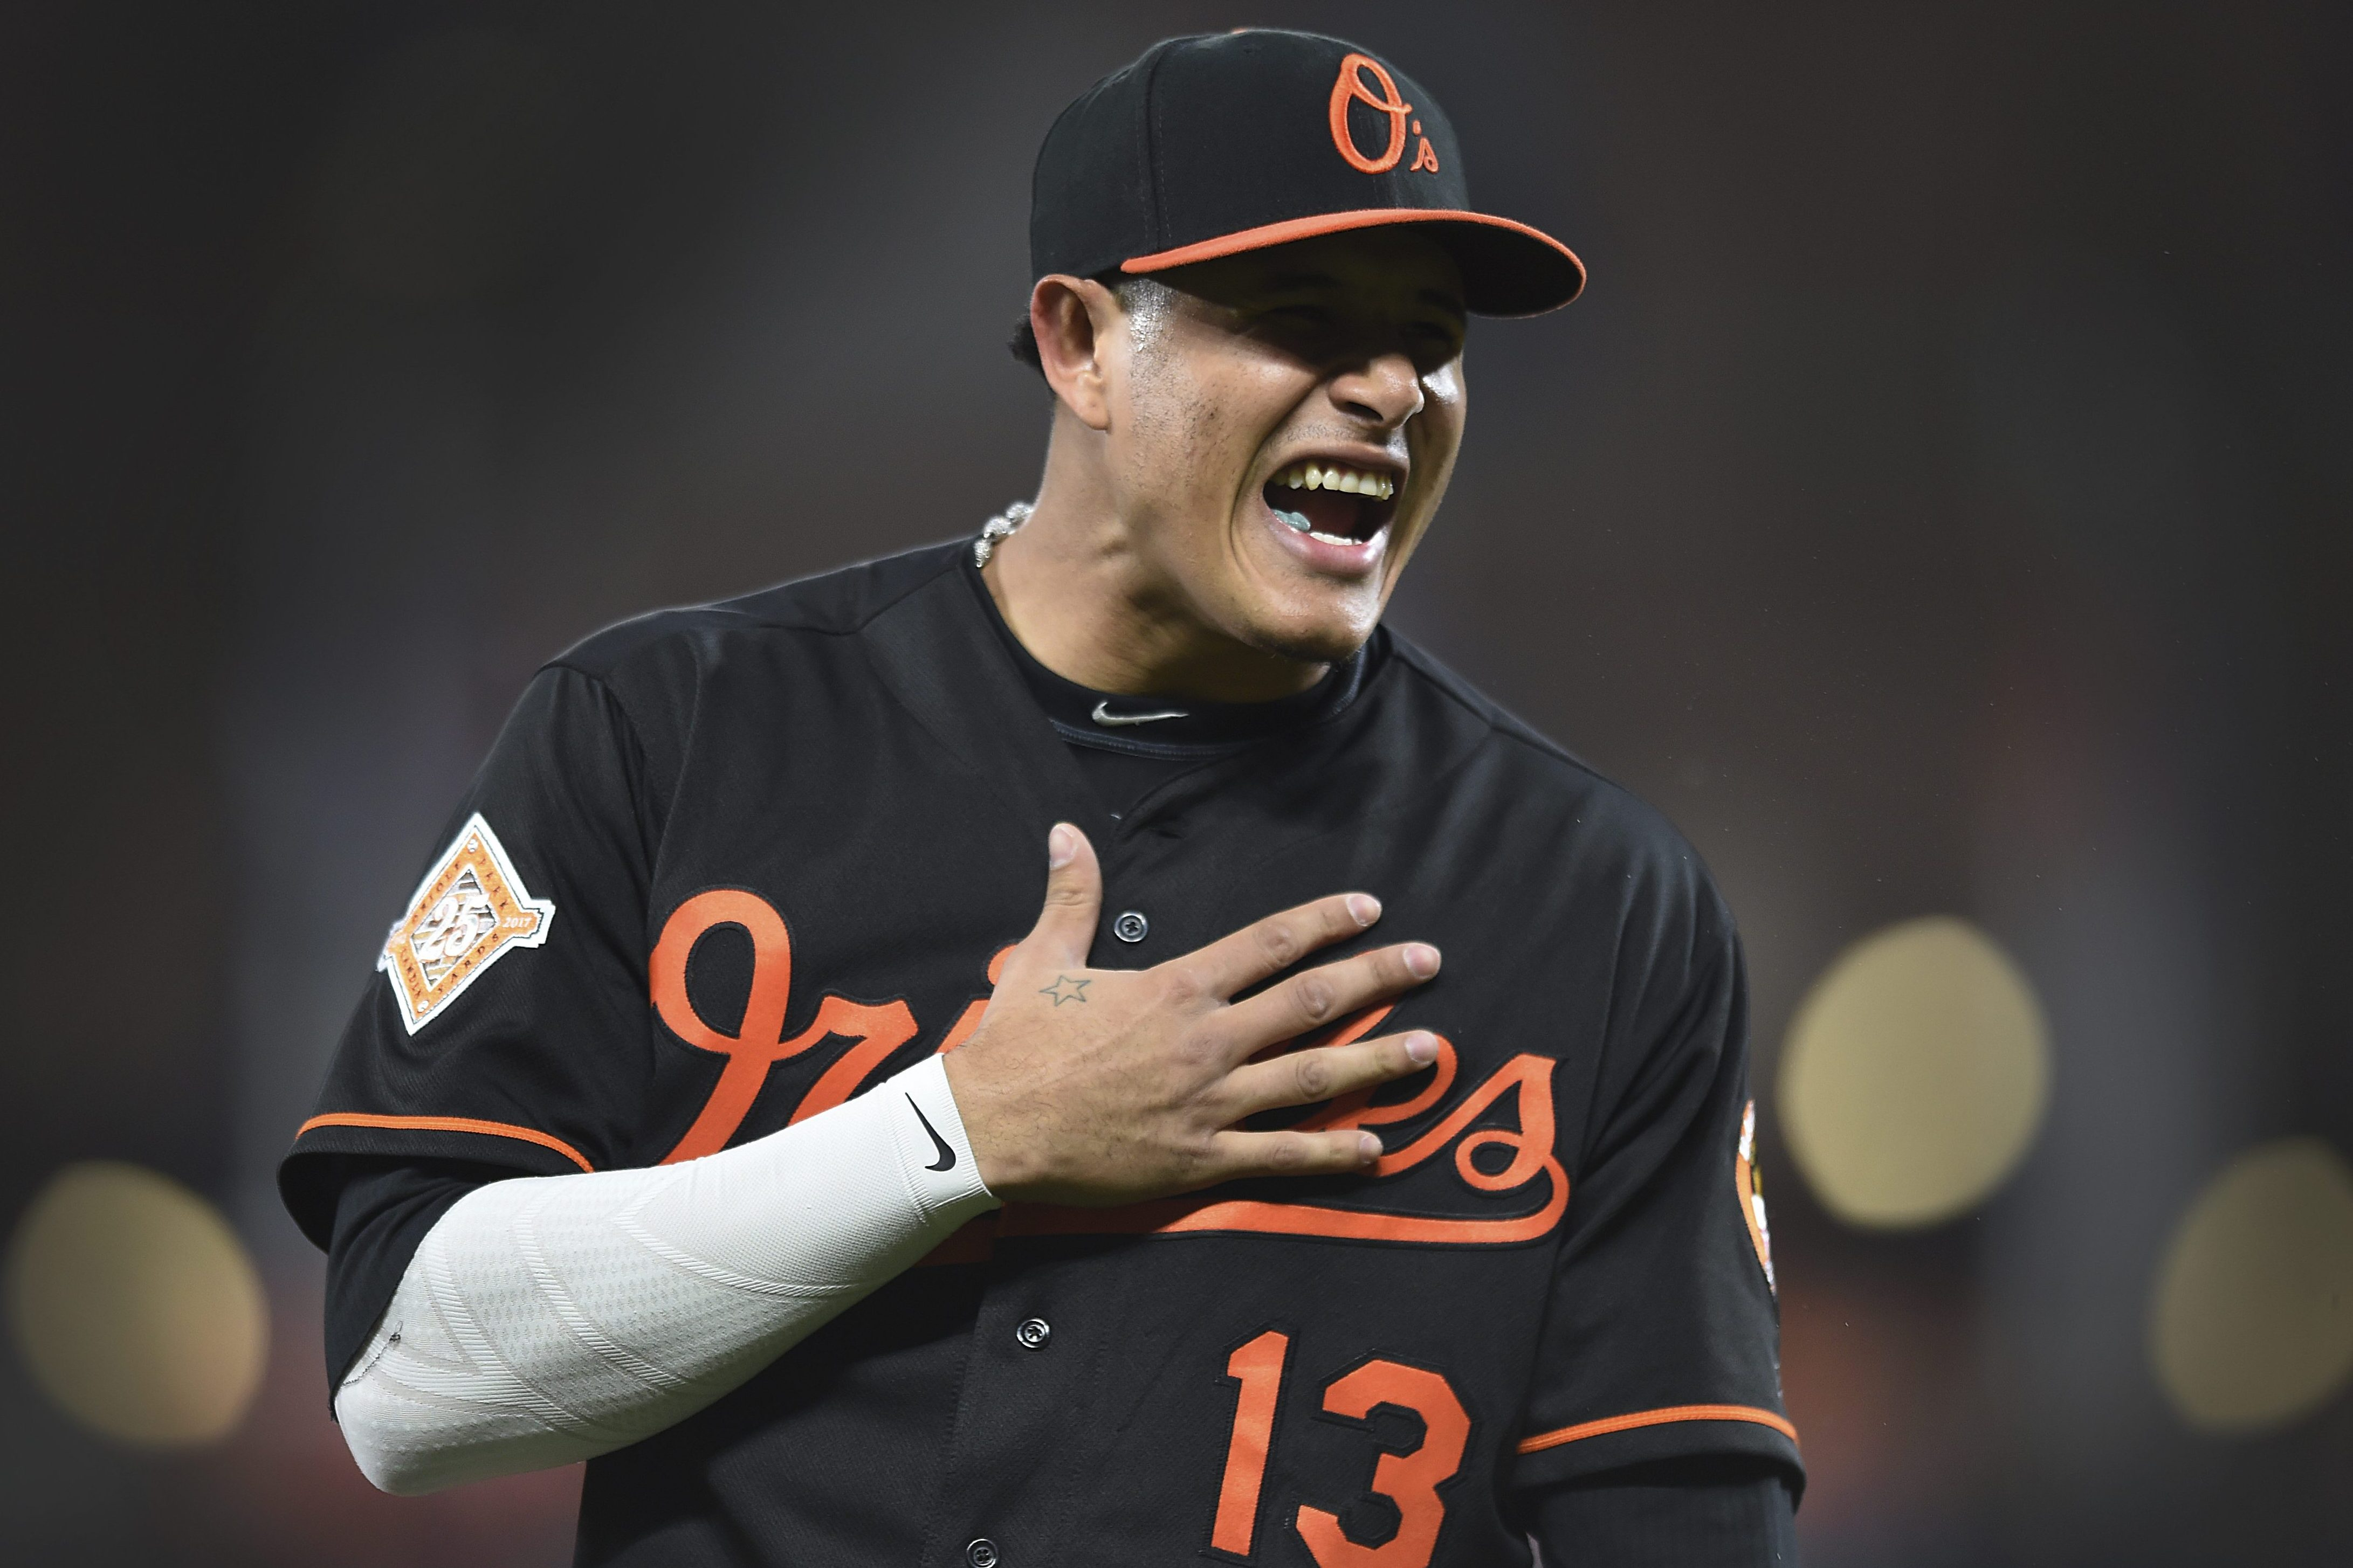 GAIL BURTON / AP PhotoManny Machado´s days in Baltimore are numbered, and the Phillies have emerged among the handful of suitors who are serious about trading for him before the July 31 deadline.